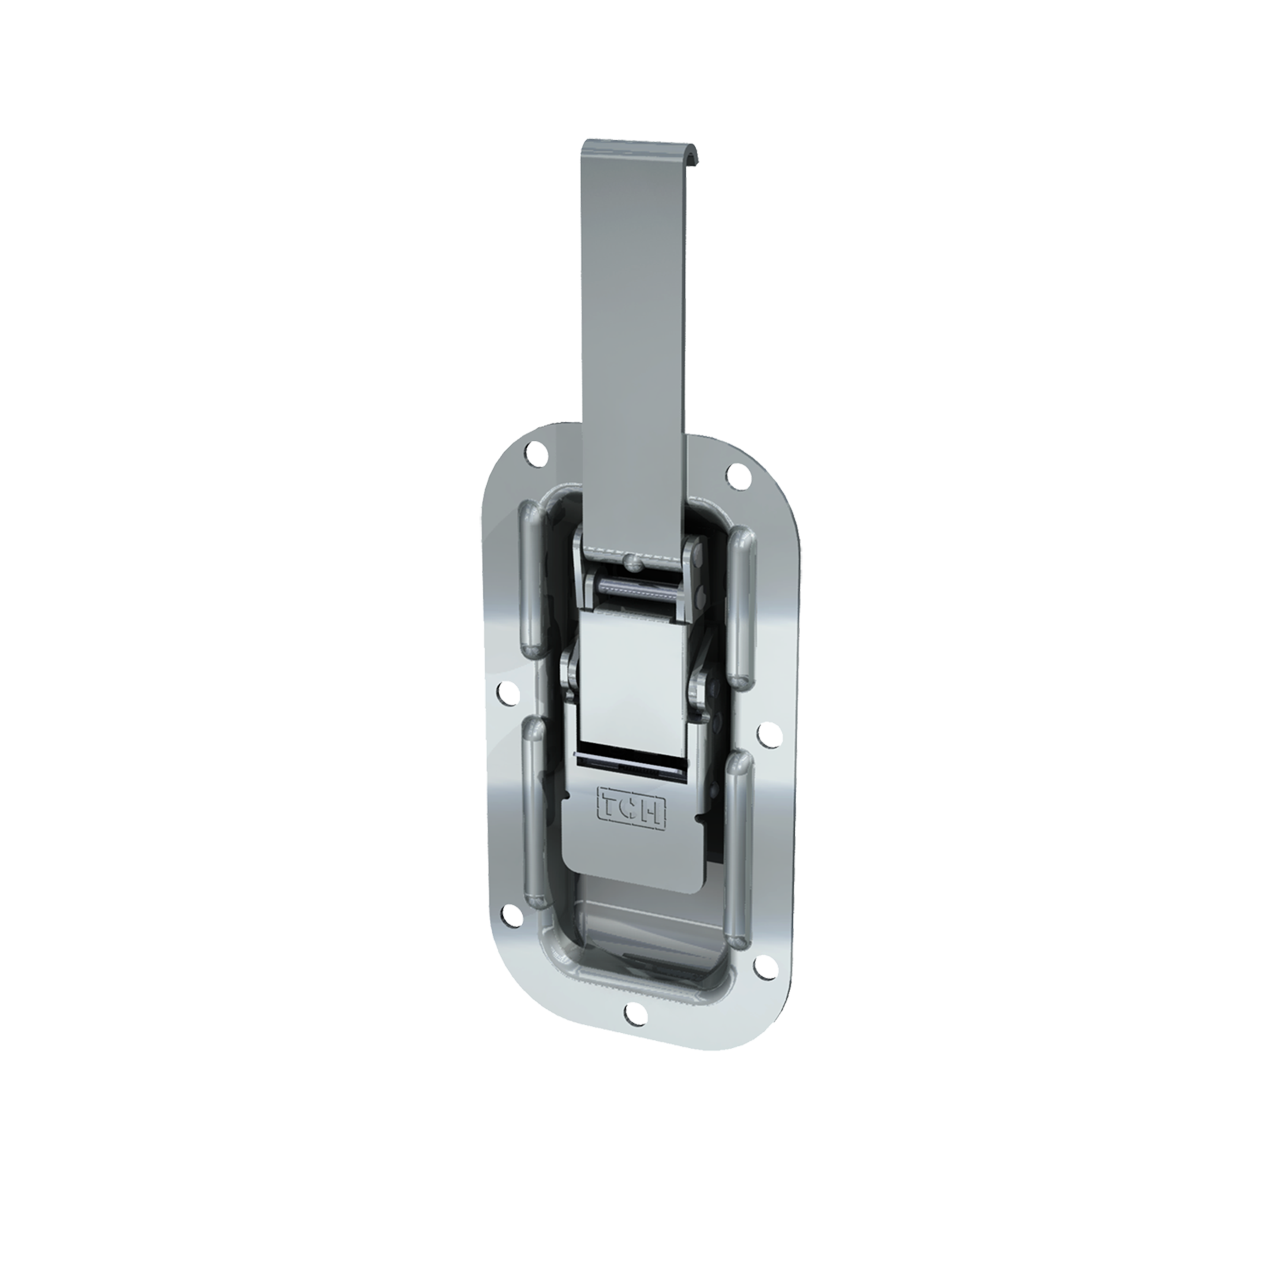 Render of Recessed Lever Drawlatch with Secondary Release